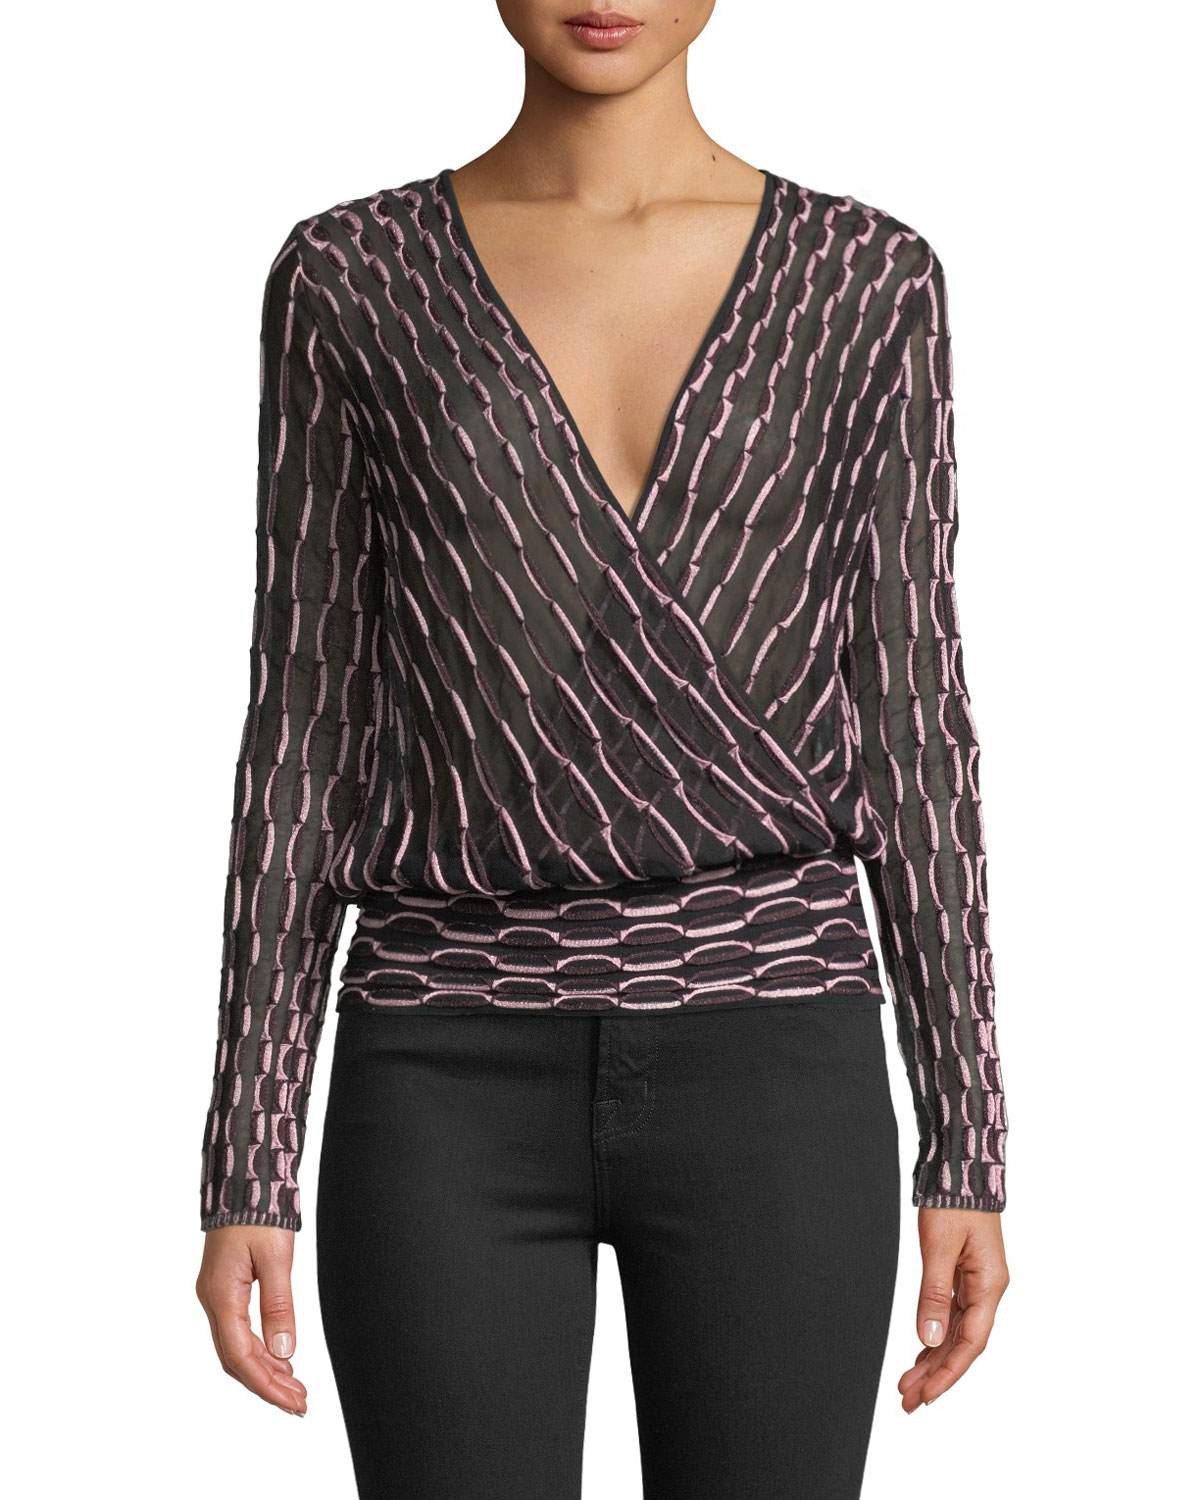 08356e8a052aff M Missoni Long-Sleeve V-Neck Jacquard Top